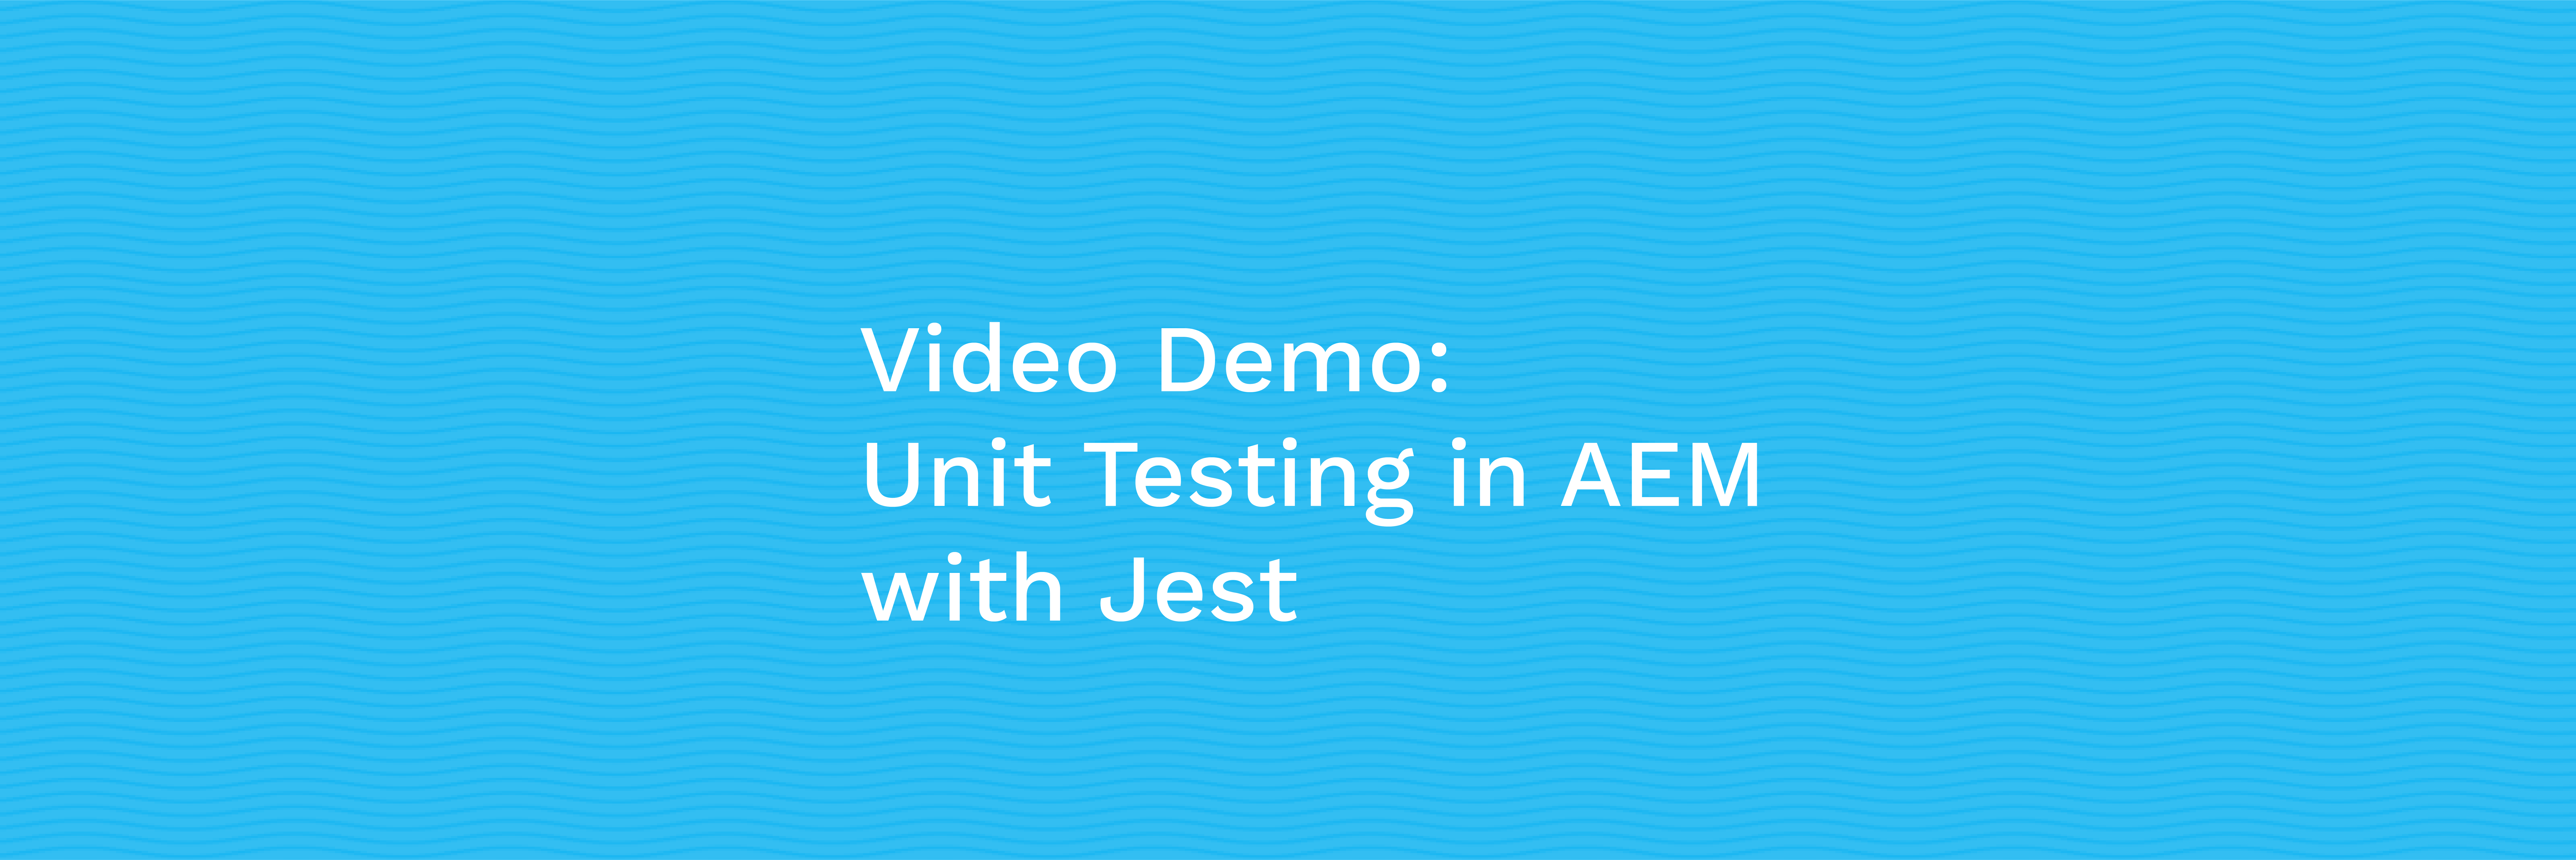 Textured blue background with text Video Demo: Unit Testing in AEM with Jest